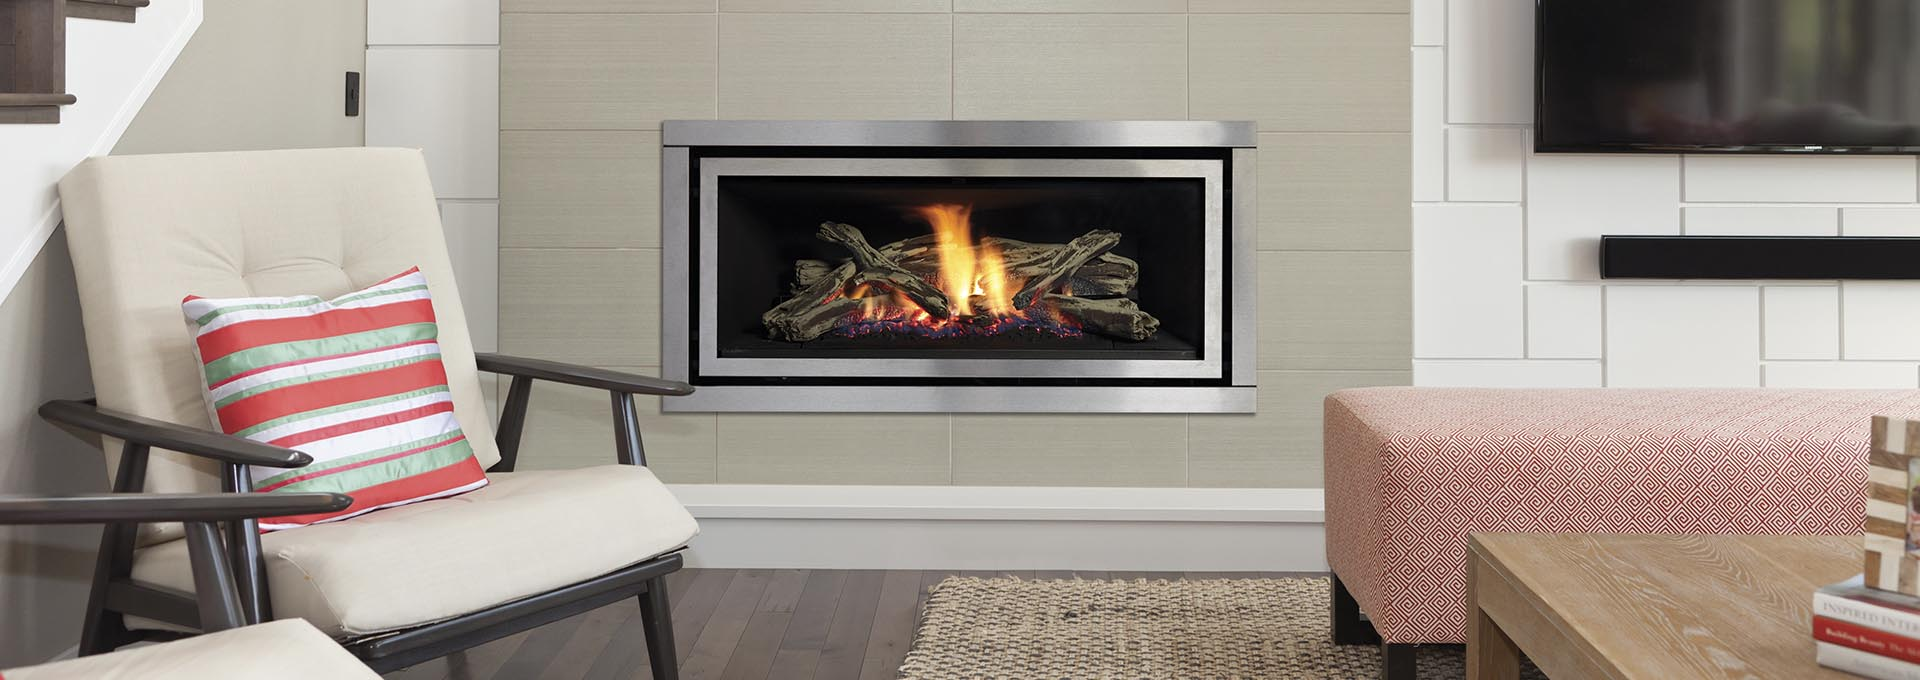 Image result for regency gas fires